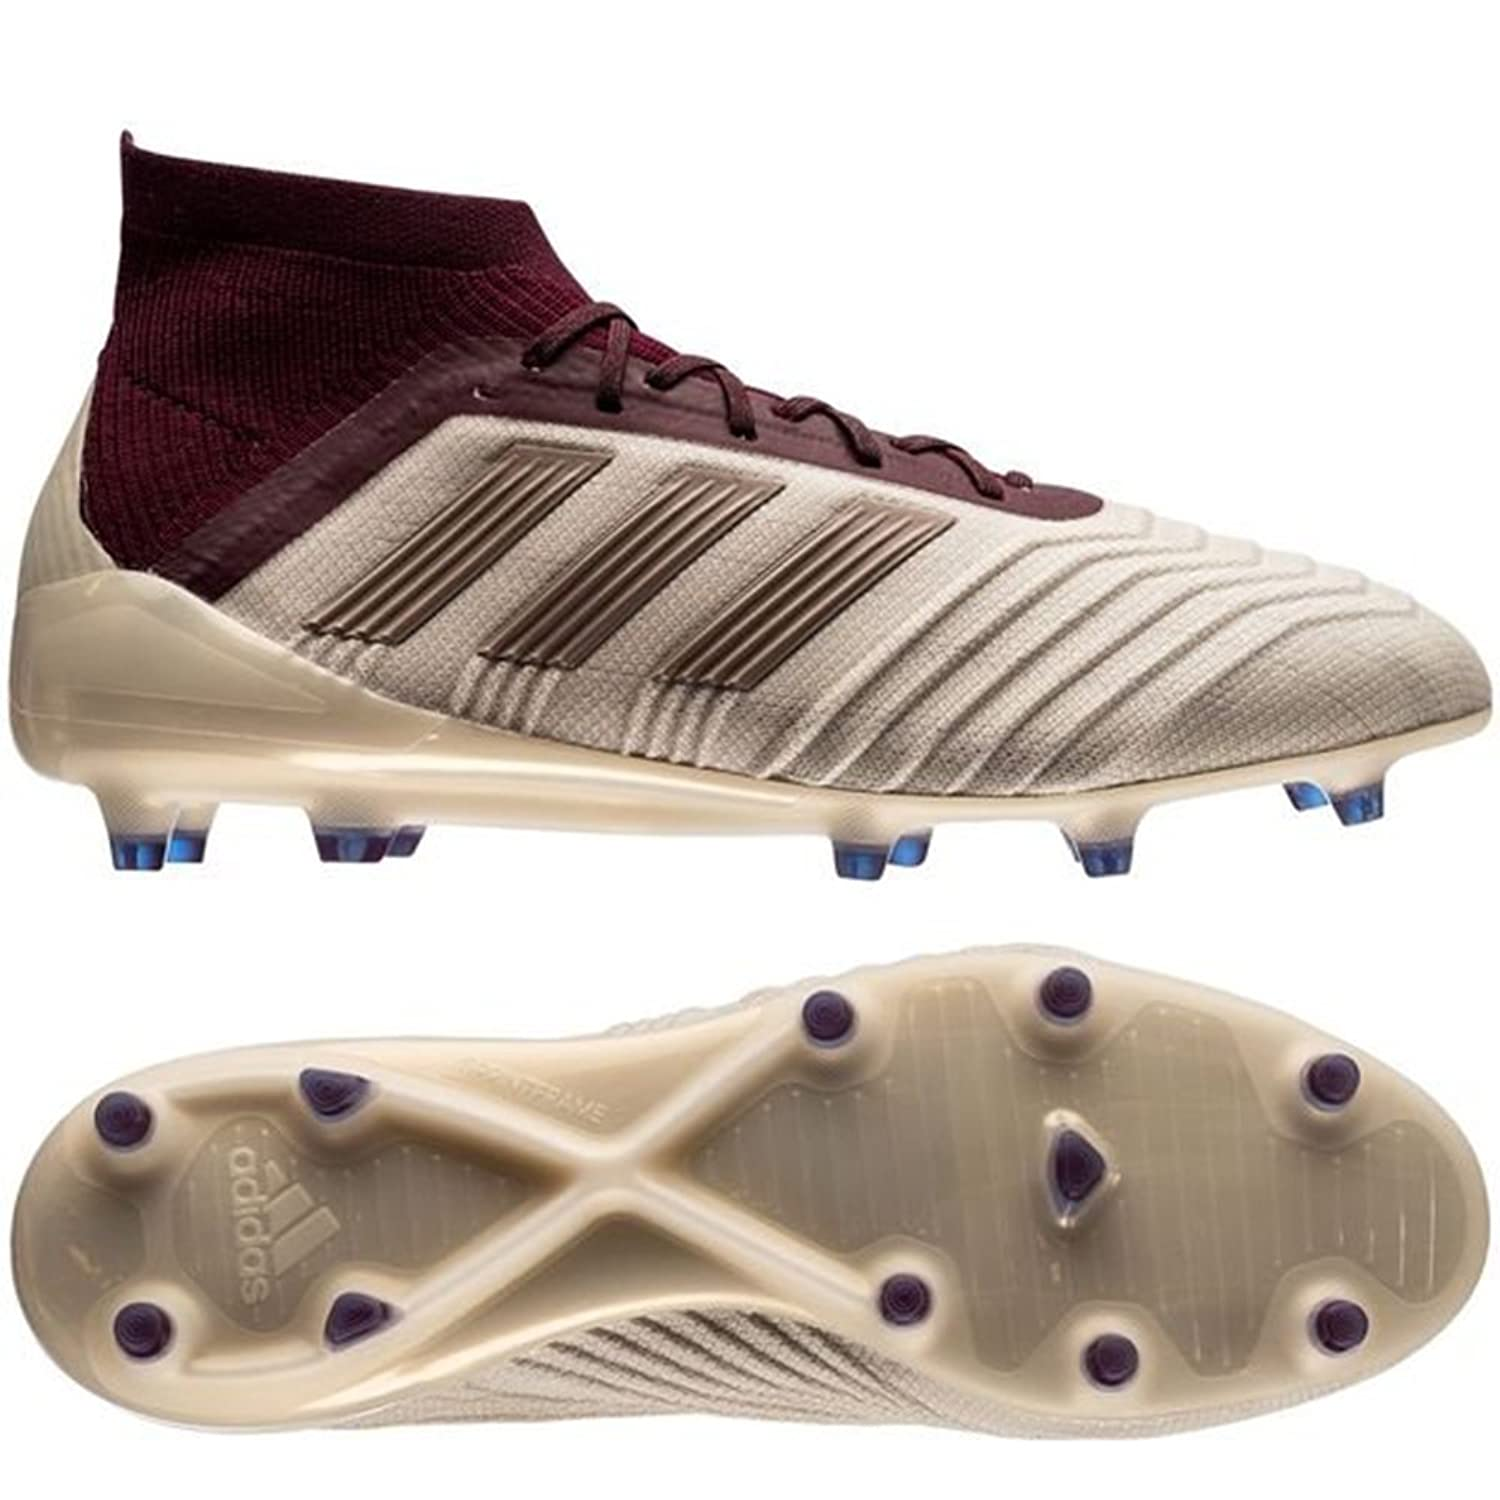 adidas Women's Predator 18.1 Firm Ground Boots / サッカー クリーツ レディース B078JCYG1T US Size 8.5